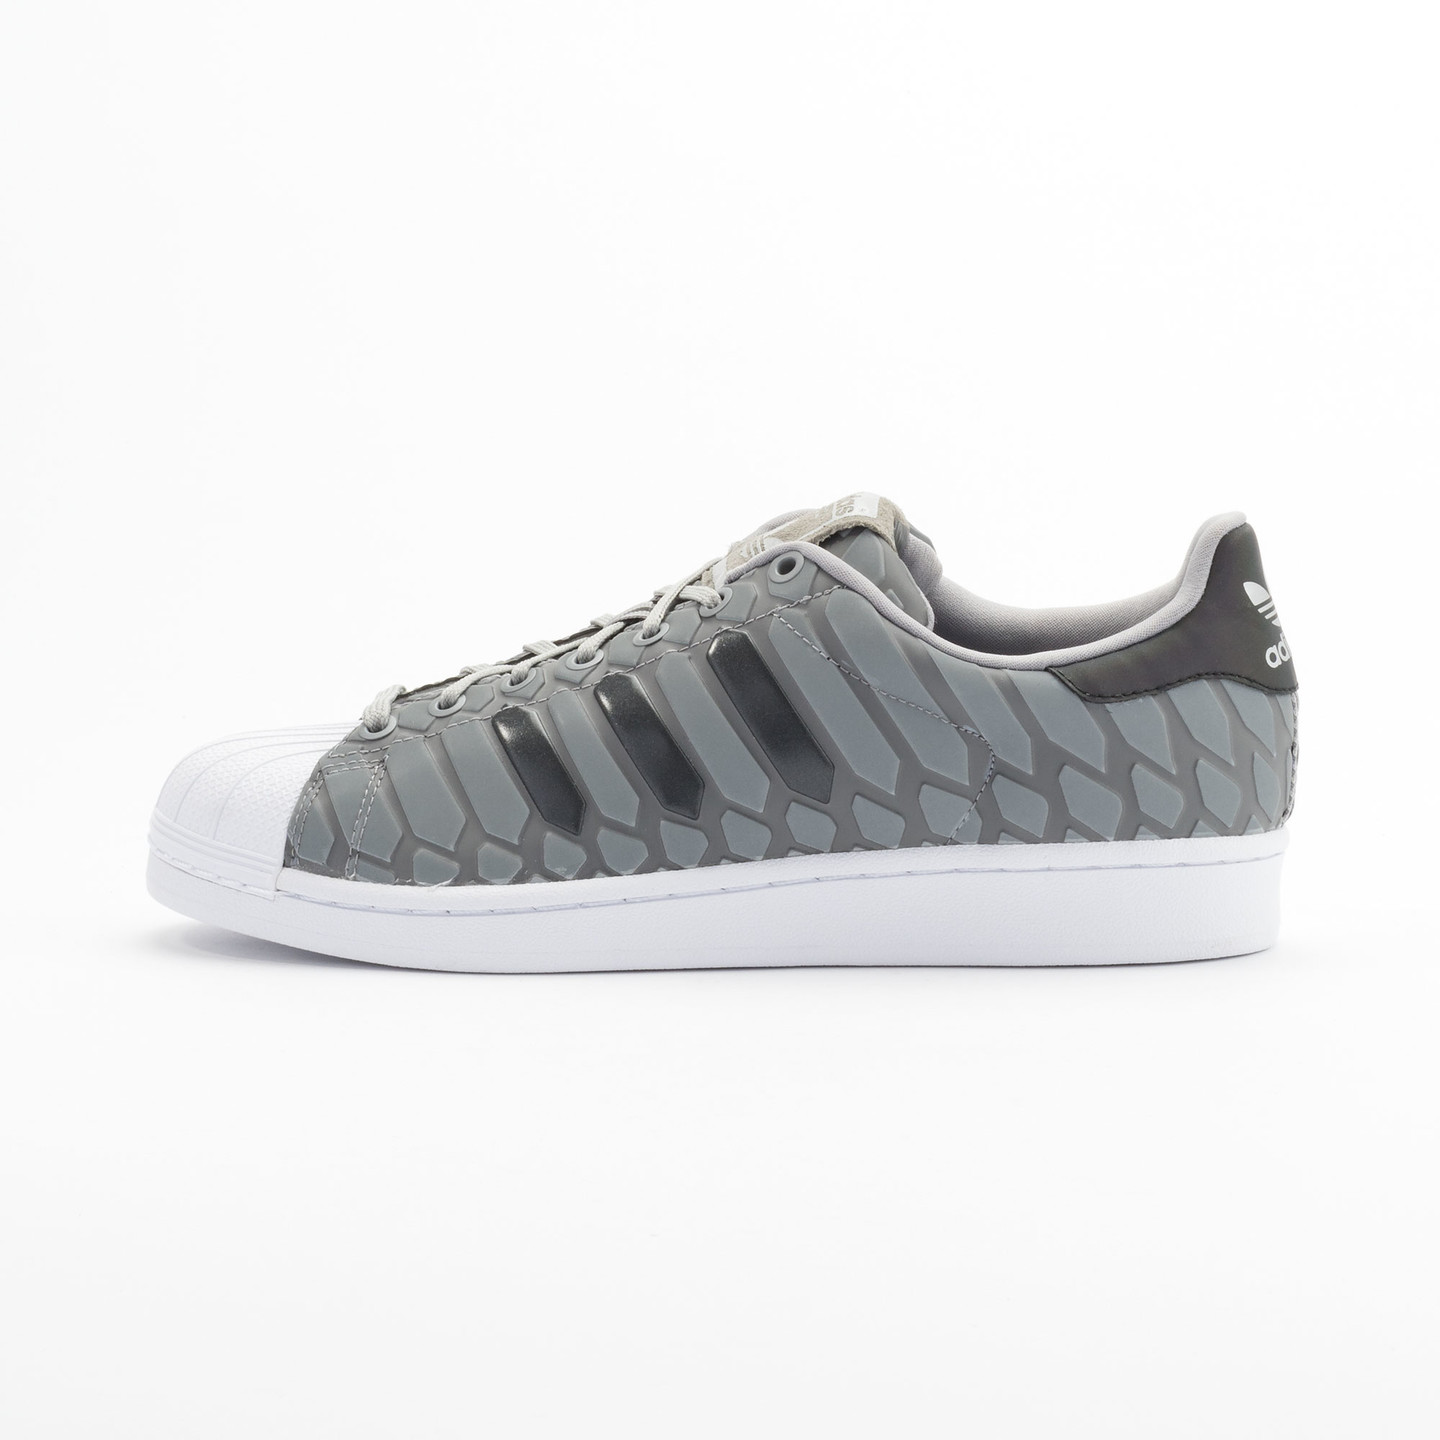 Adidas Superstar Xeno Pack Ltonix / Supcol / Ftwwht D69367-40.66